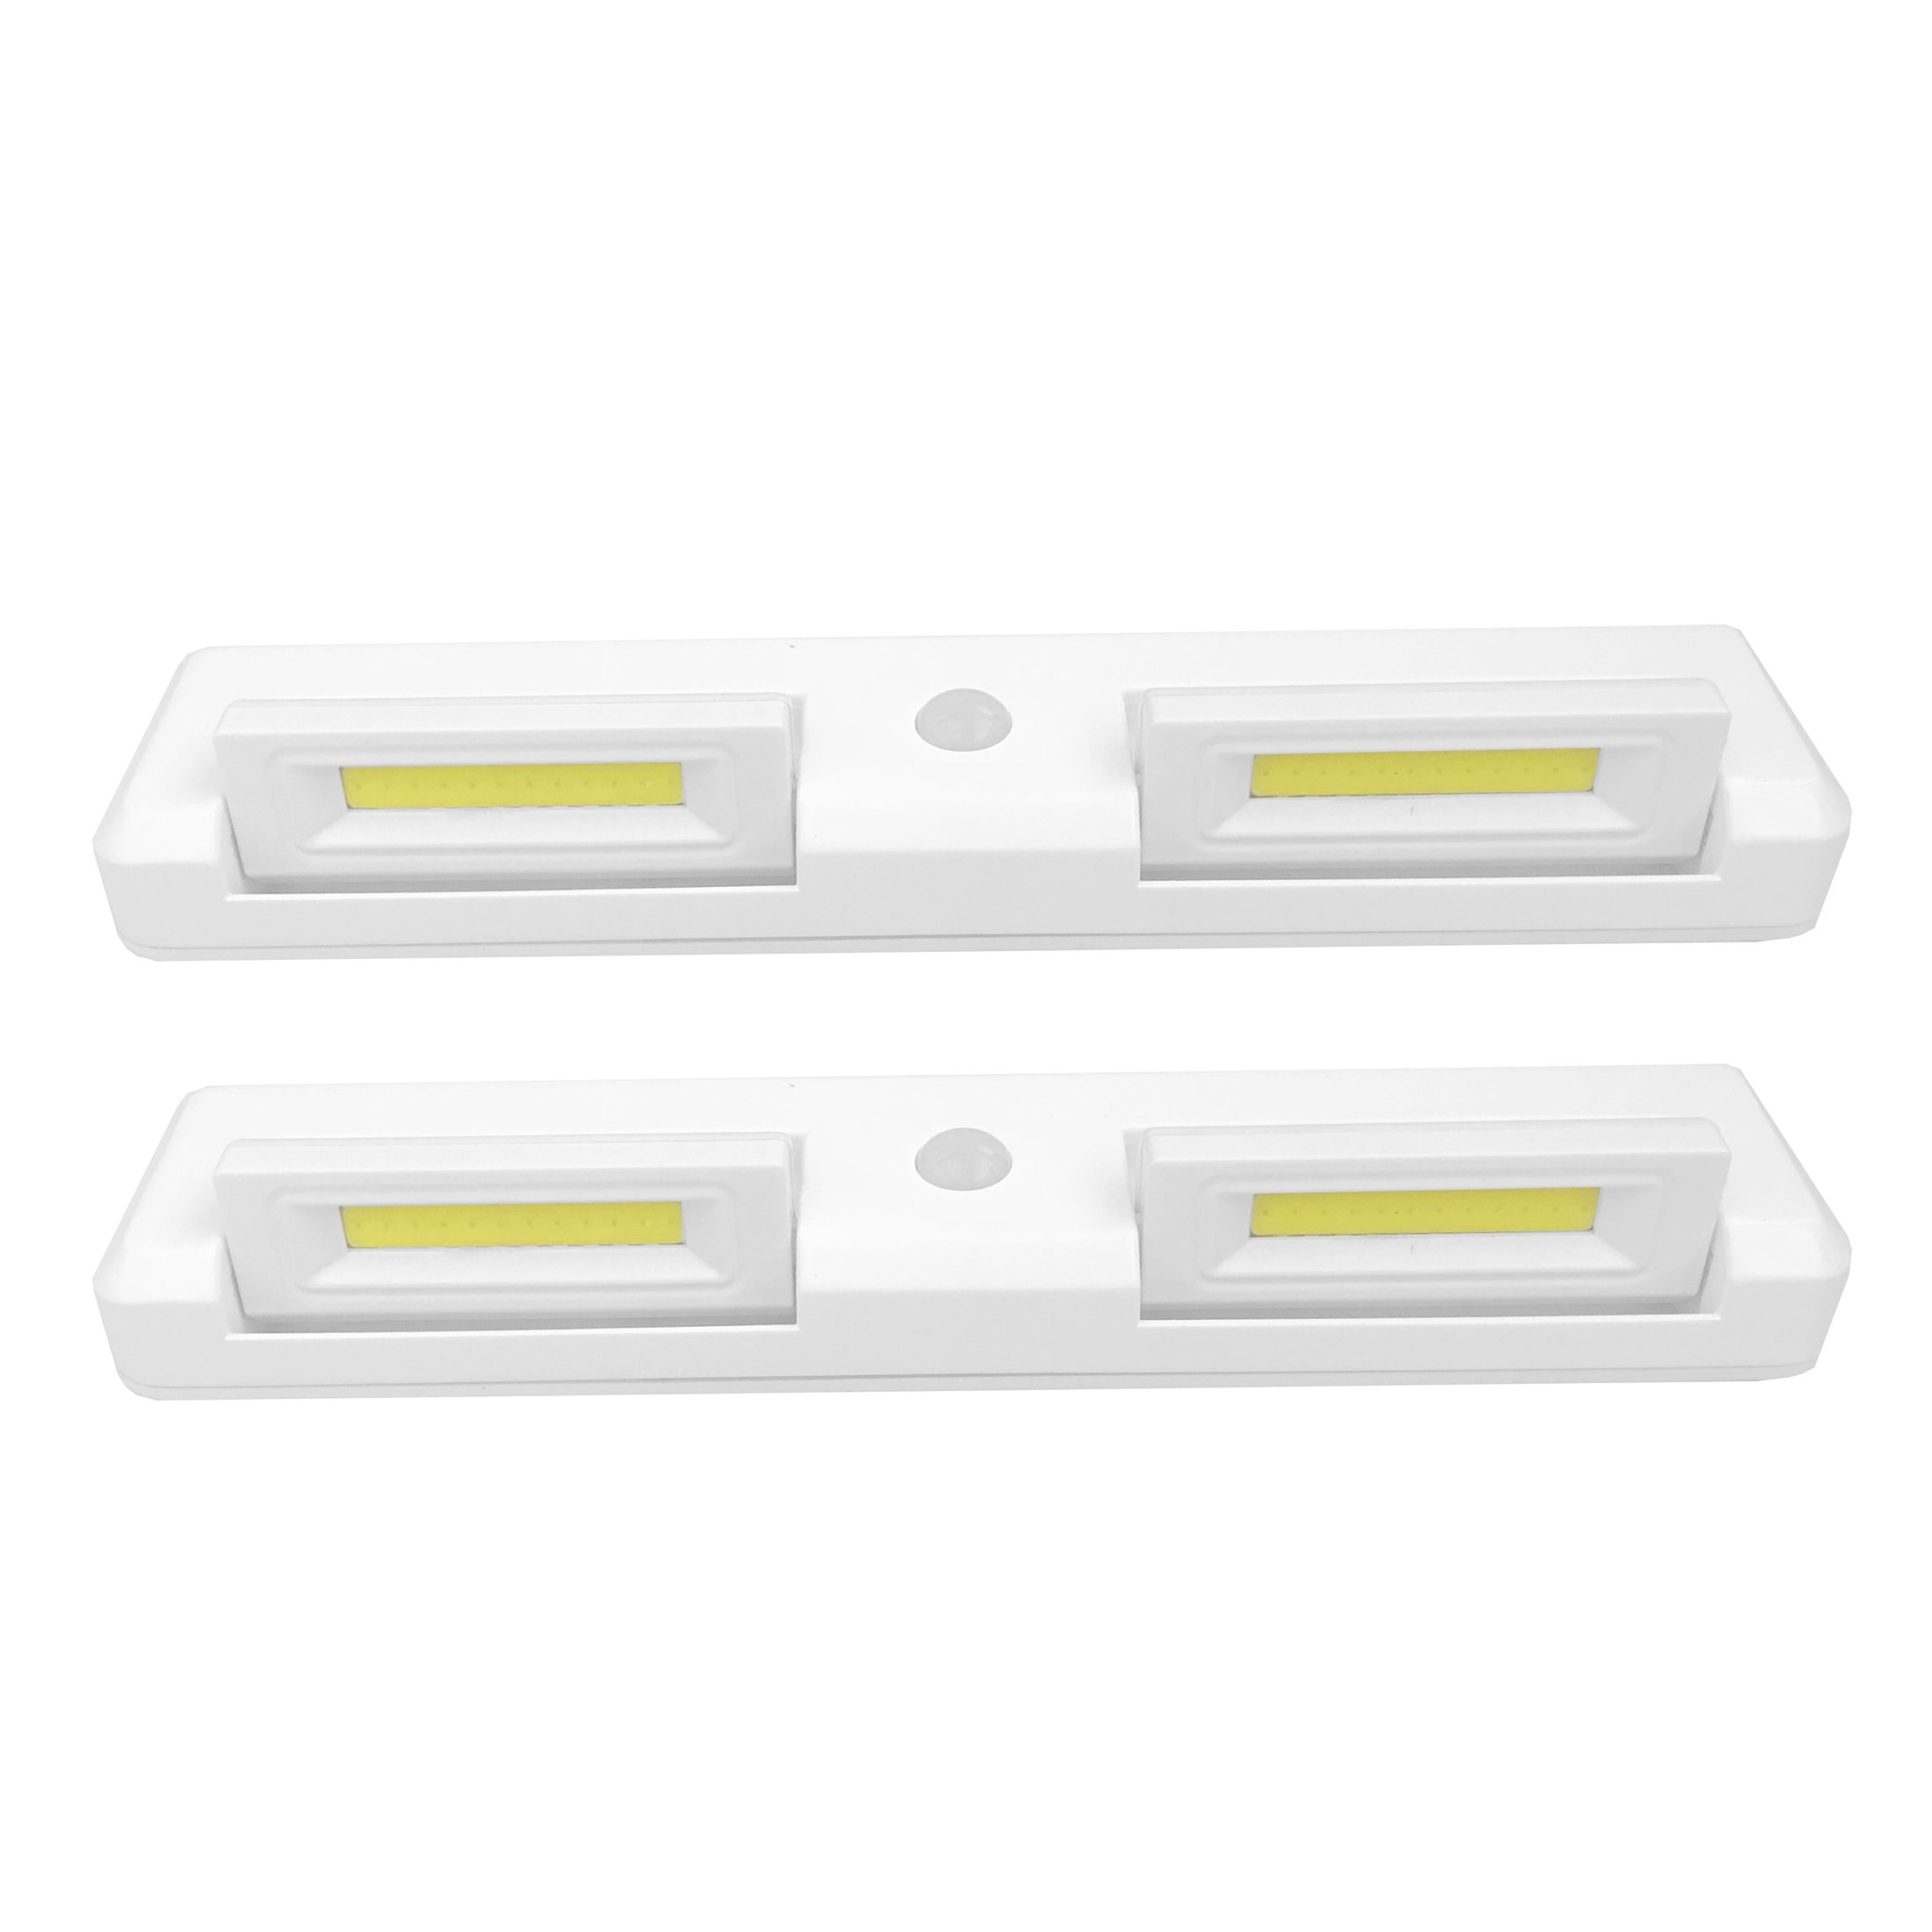 Seville Classics Adjustable Motion Activated LED Cabinet Lights (2-Pack), White